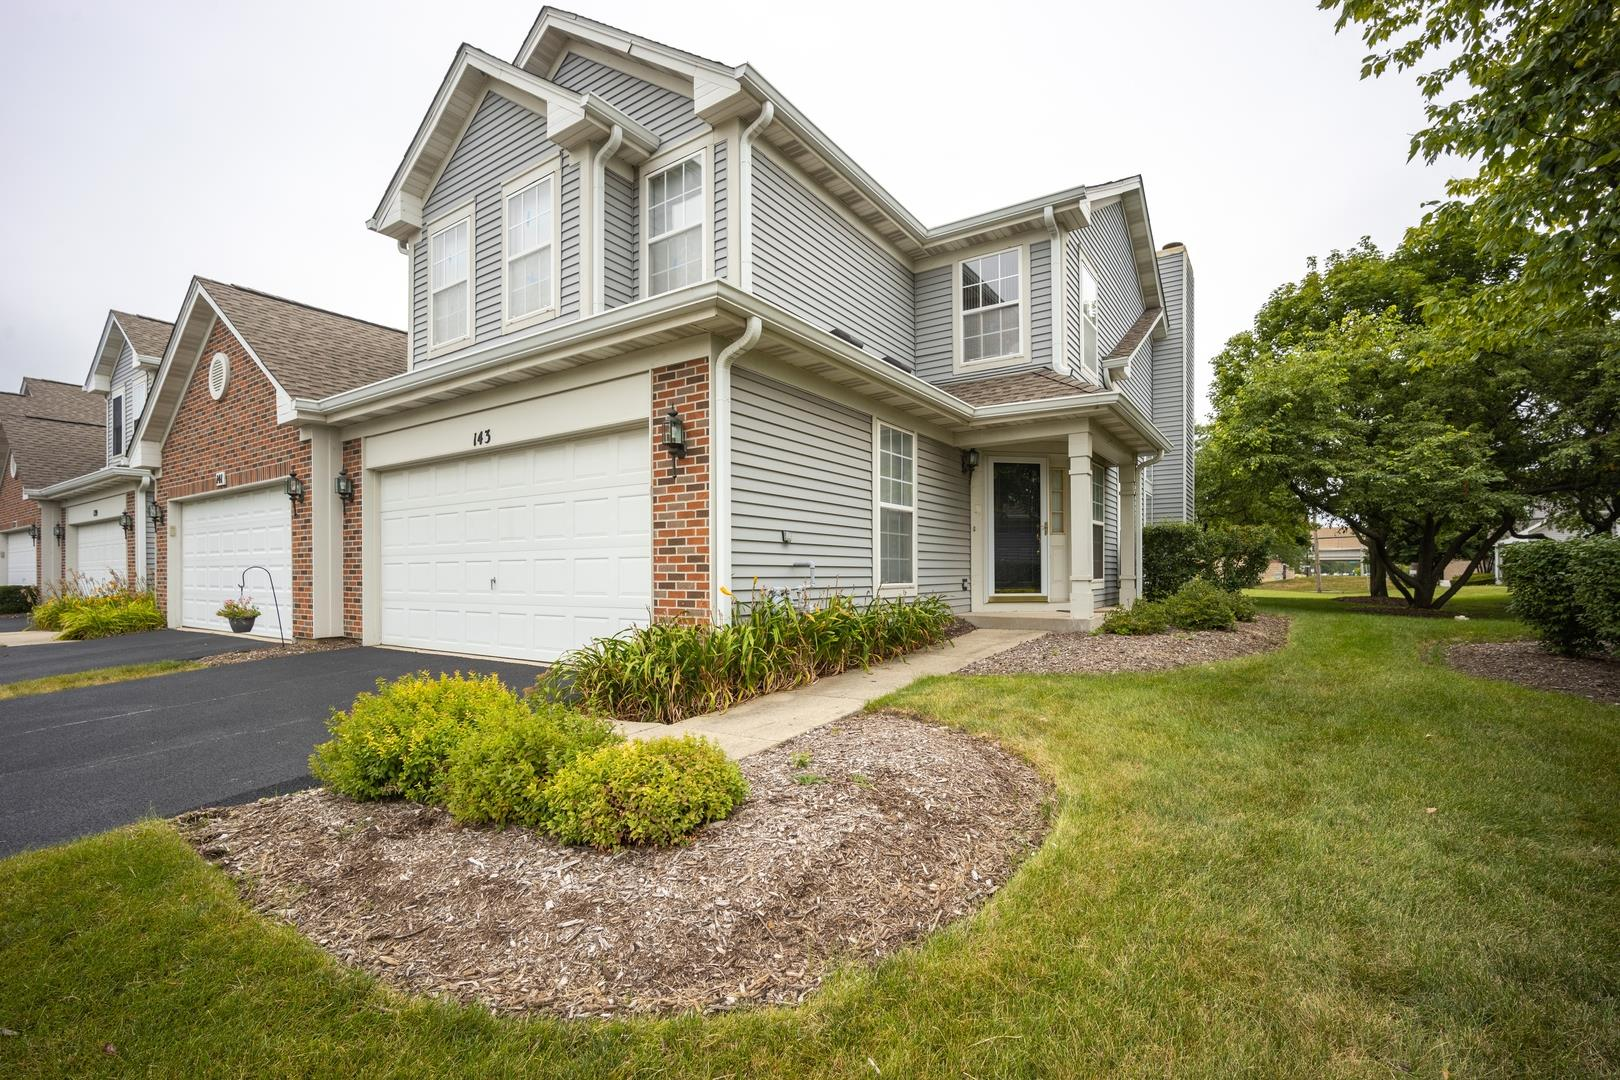 143 Millers Crossing, Itasca, IL 60143 - #: 10890413